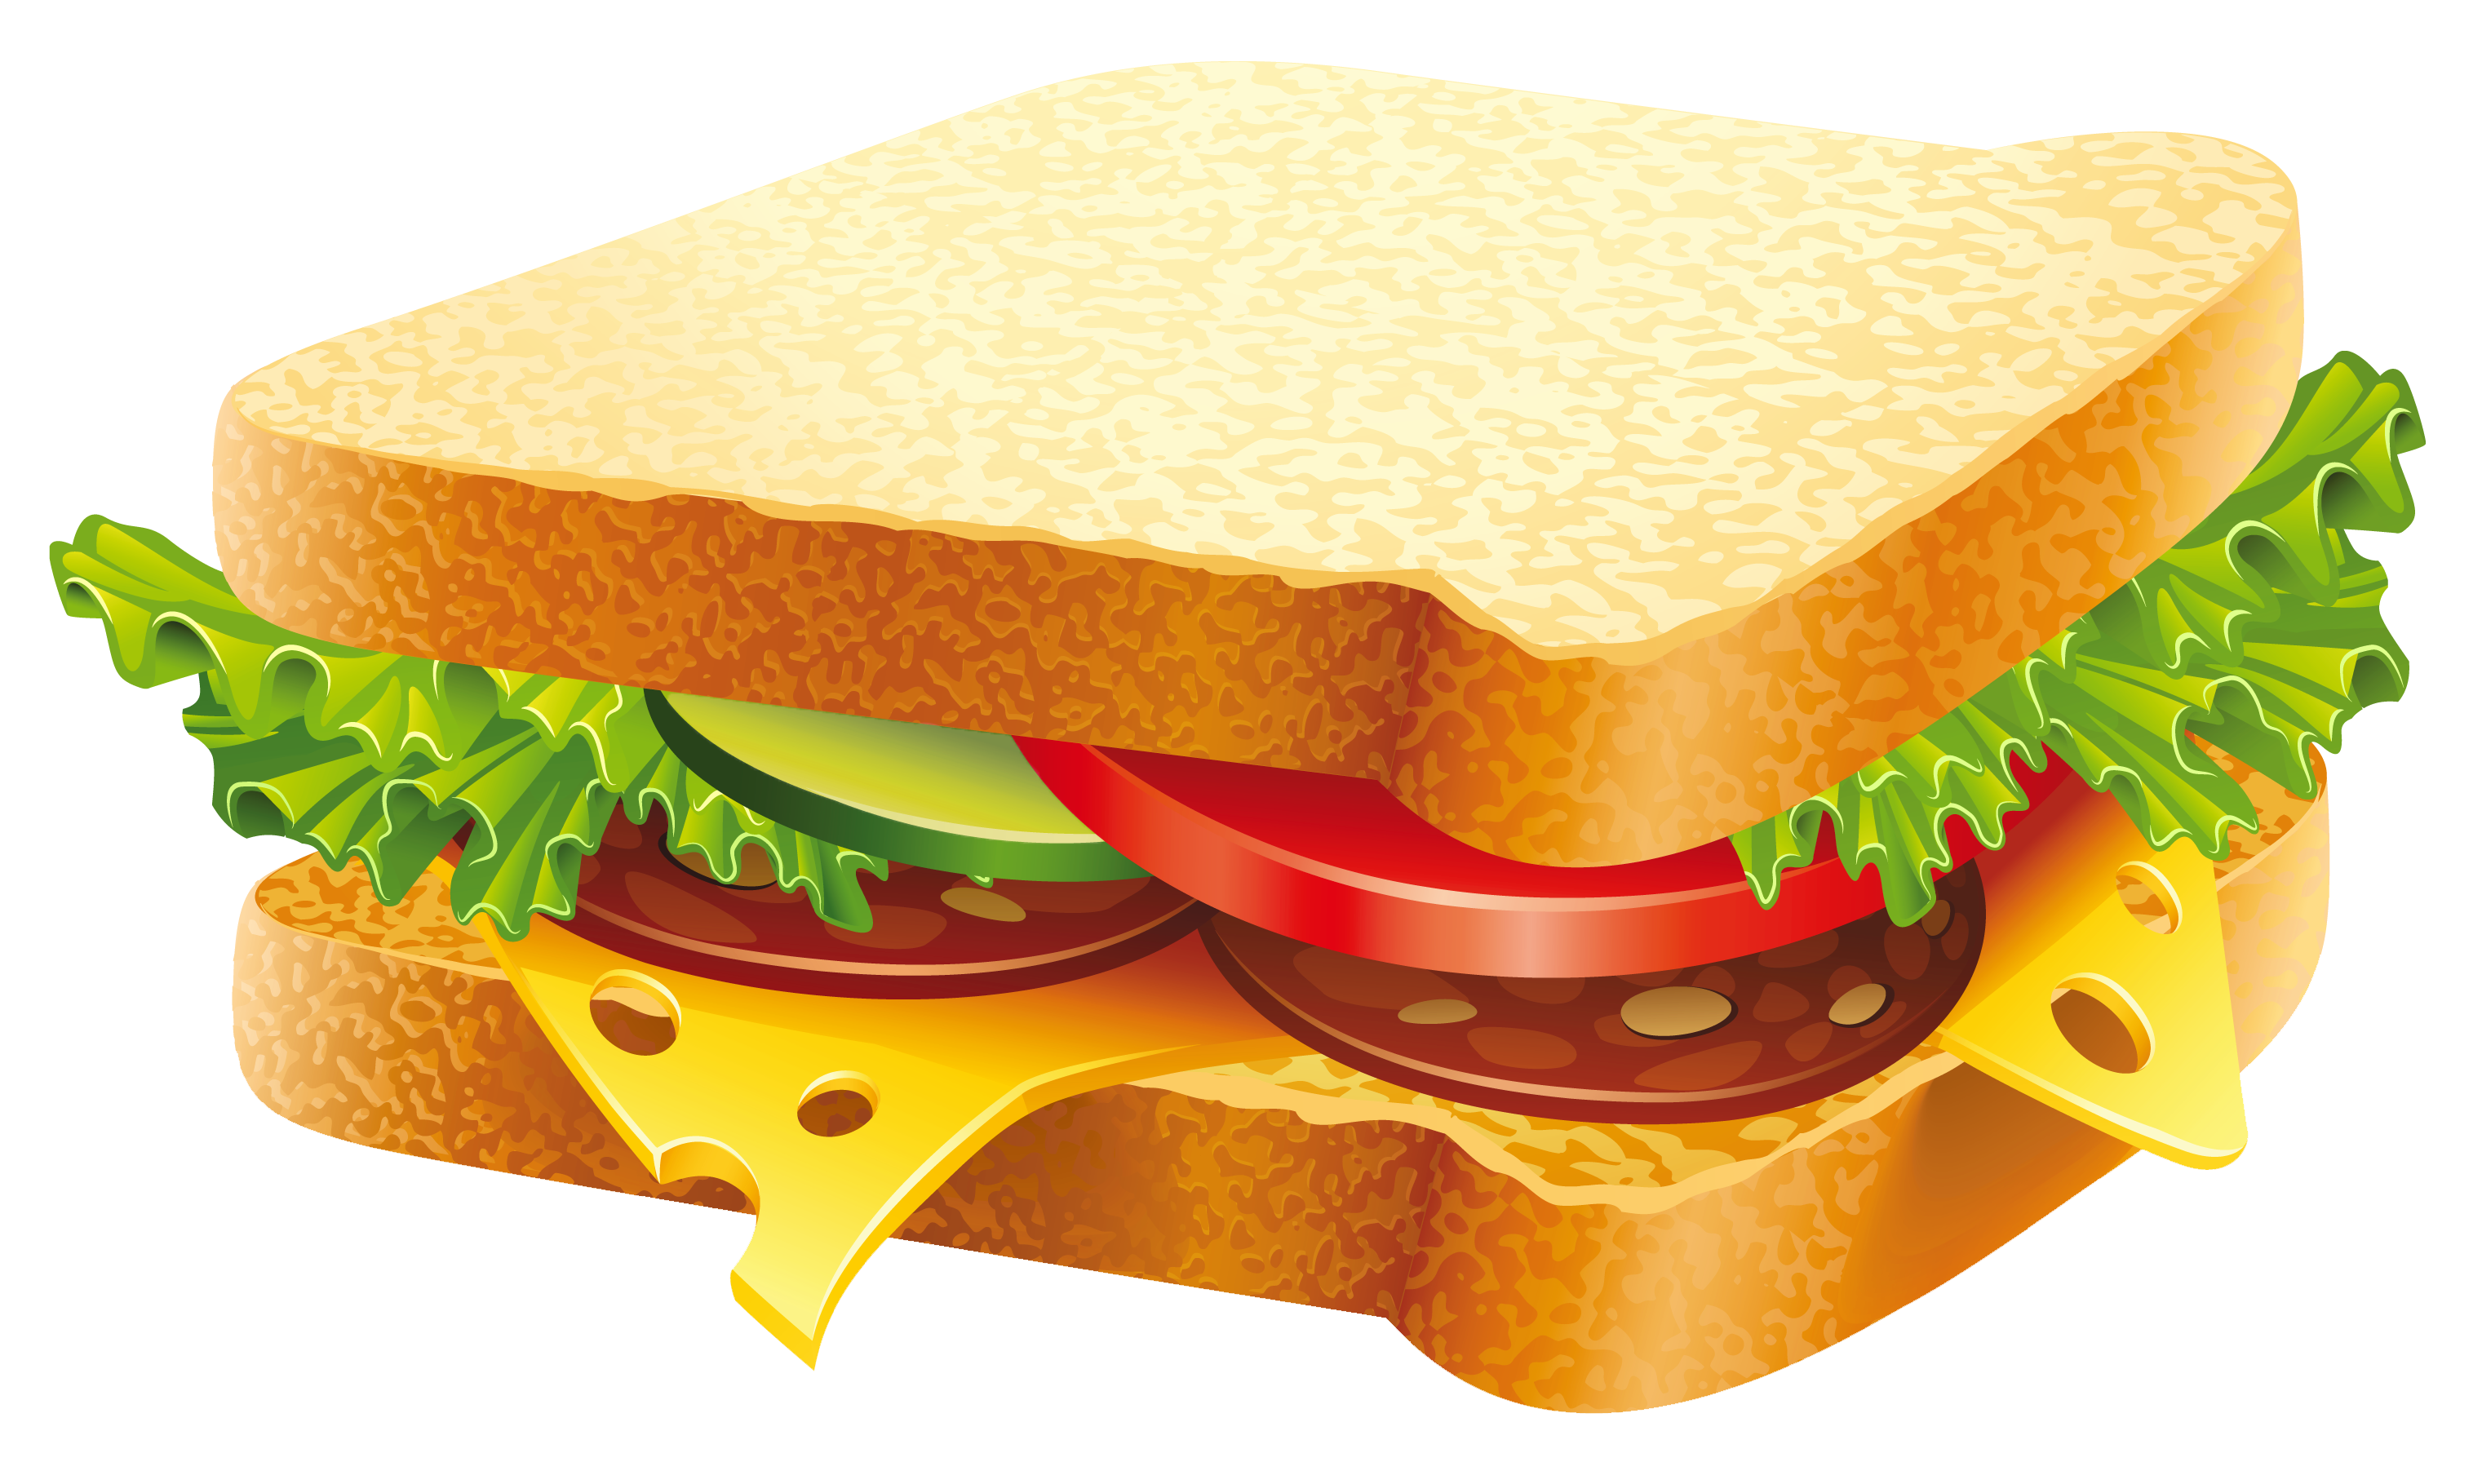 Turkey and cheese sandwich clipart png freeuse Hamburger Submarine sandwich Vegetable sandwich - Sandwich PNG ... png freeuse